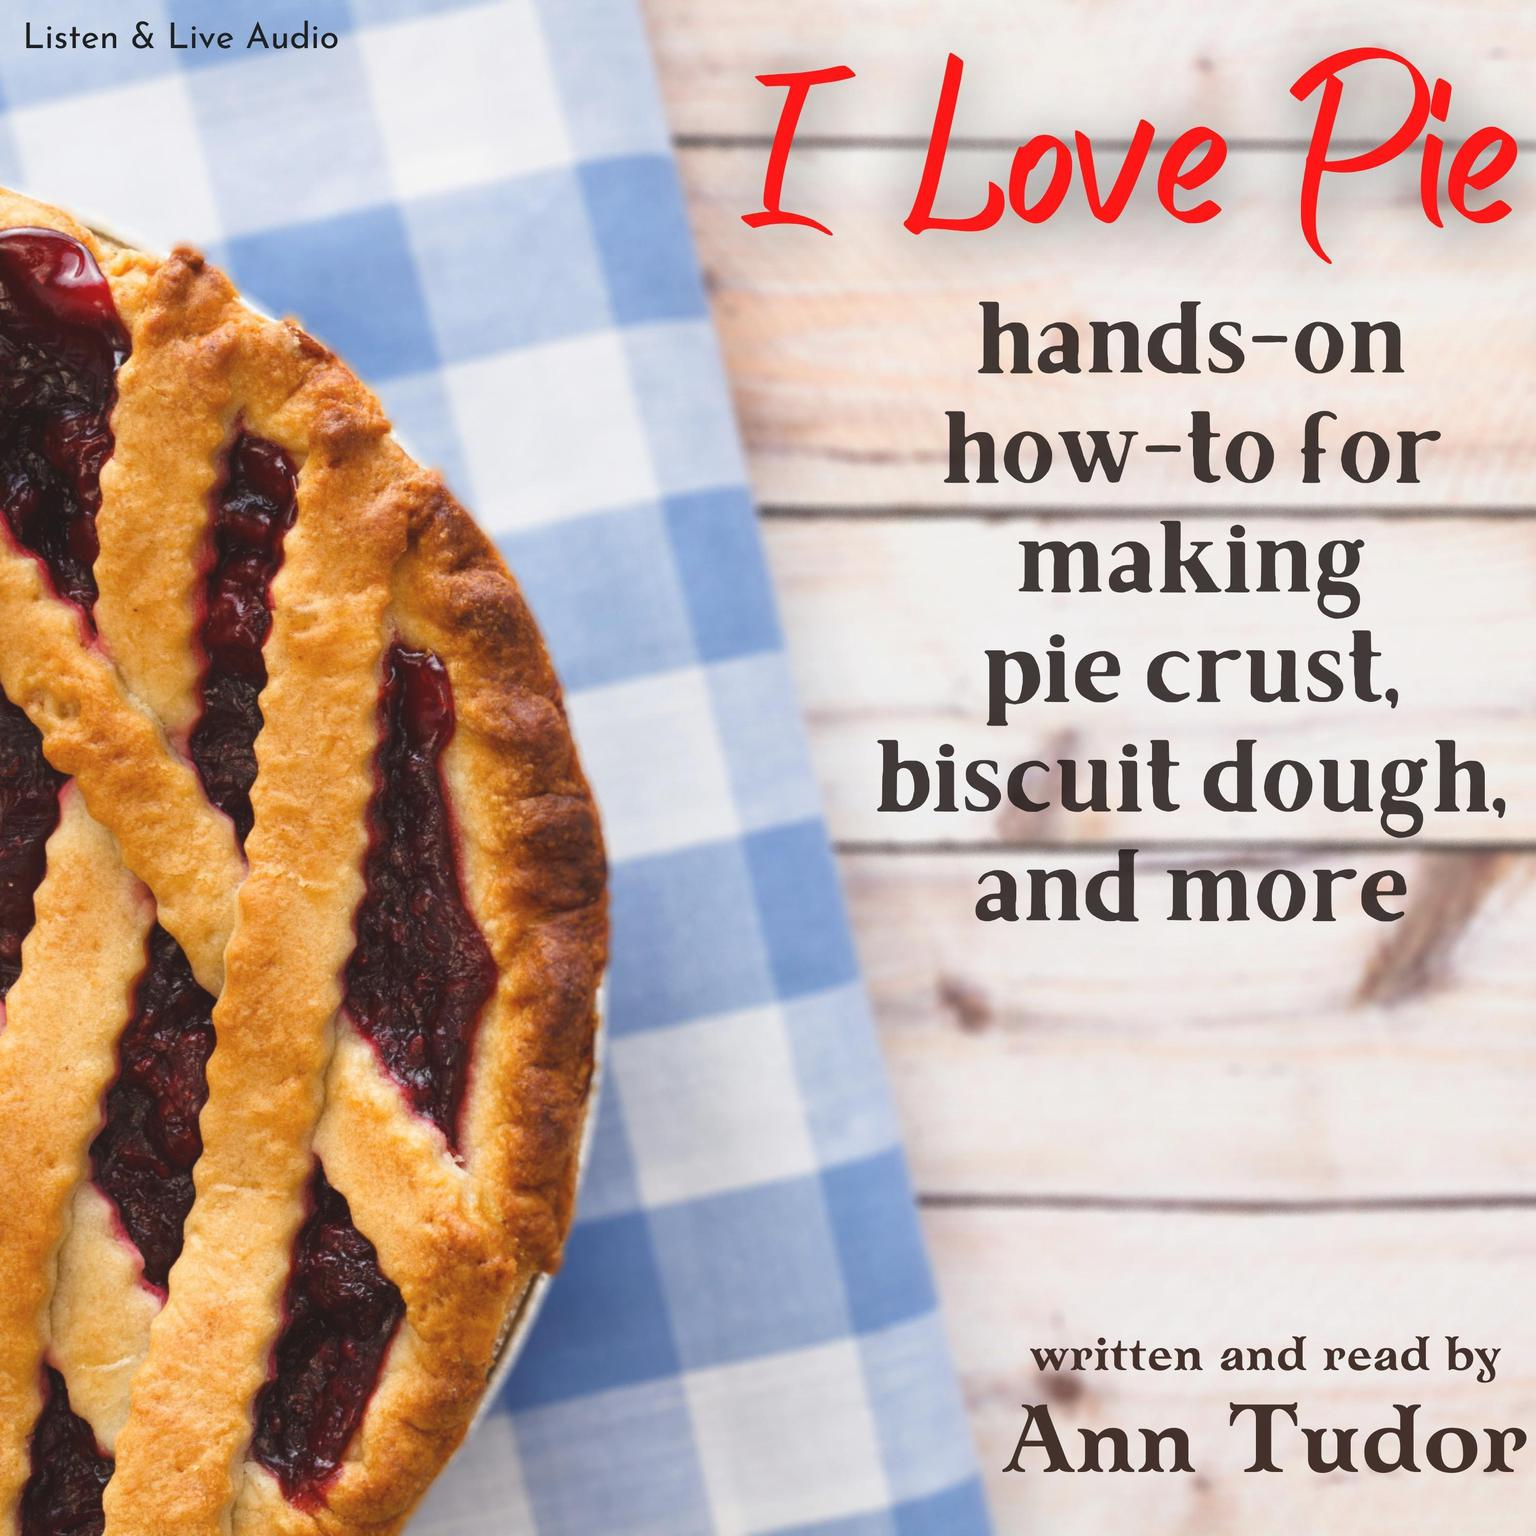 Printable I Love Pie: An Opinionated Hands-on How-to for Making Pie Crust, Biscuit Dough, and More Audiobook Cover Art